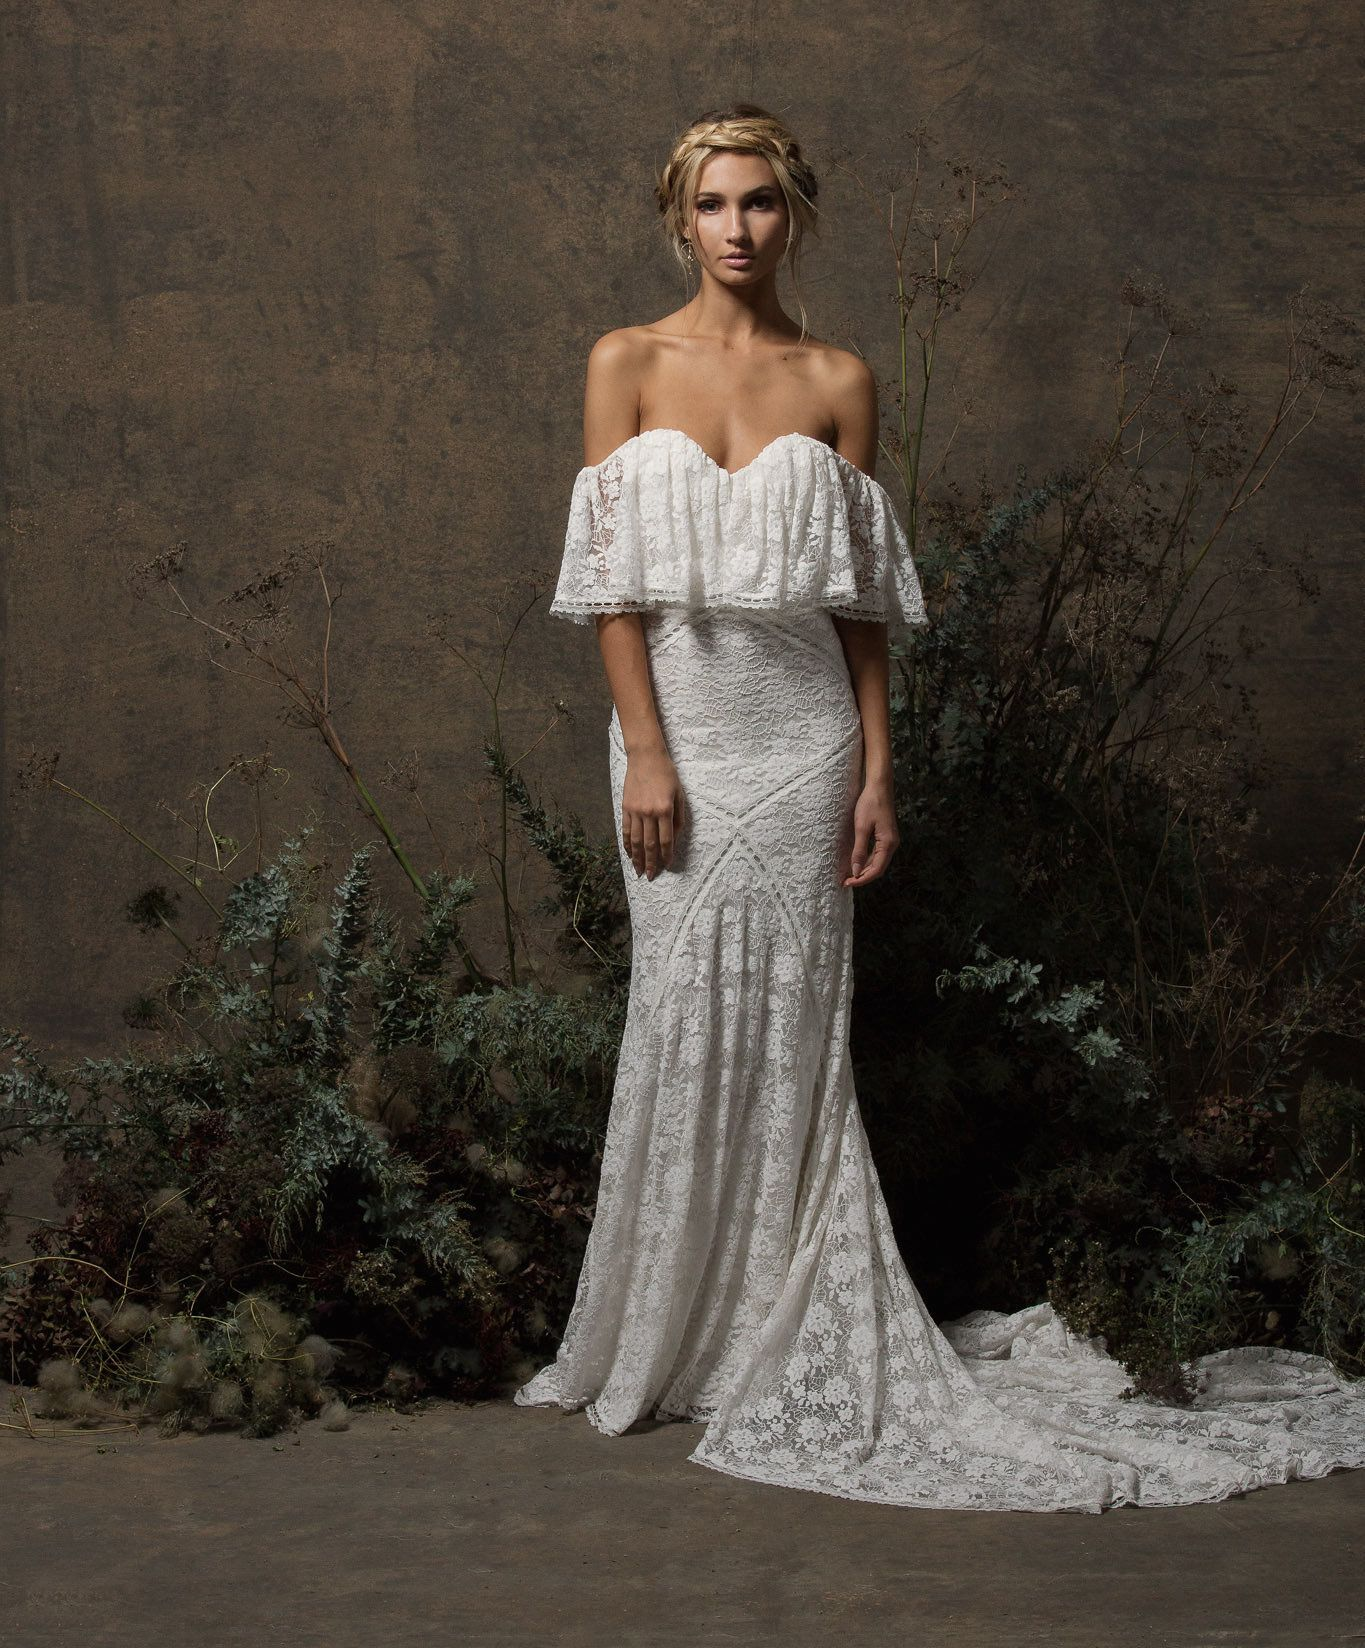 a2508b9bece1 lizzy-lace-dress-off-shoulder-rustic-boho-wedding-dress -with-panels-and-long-train